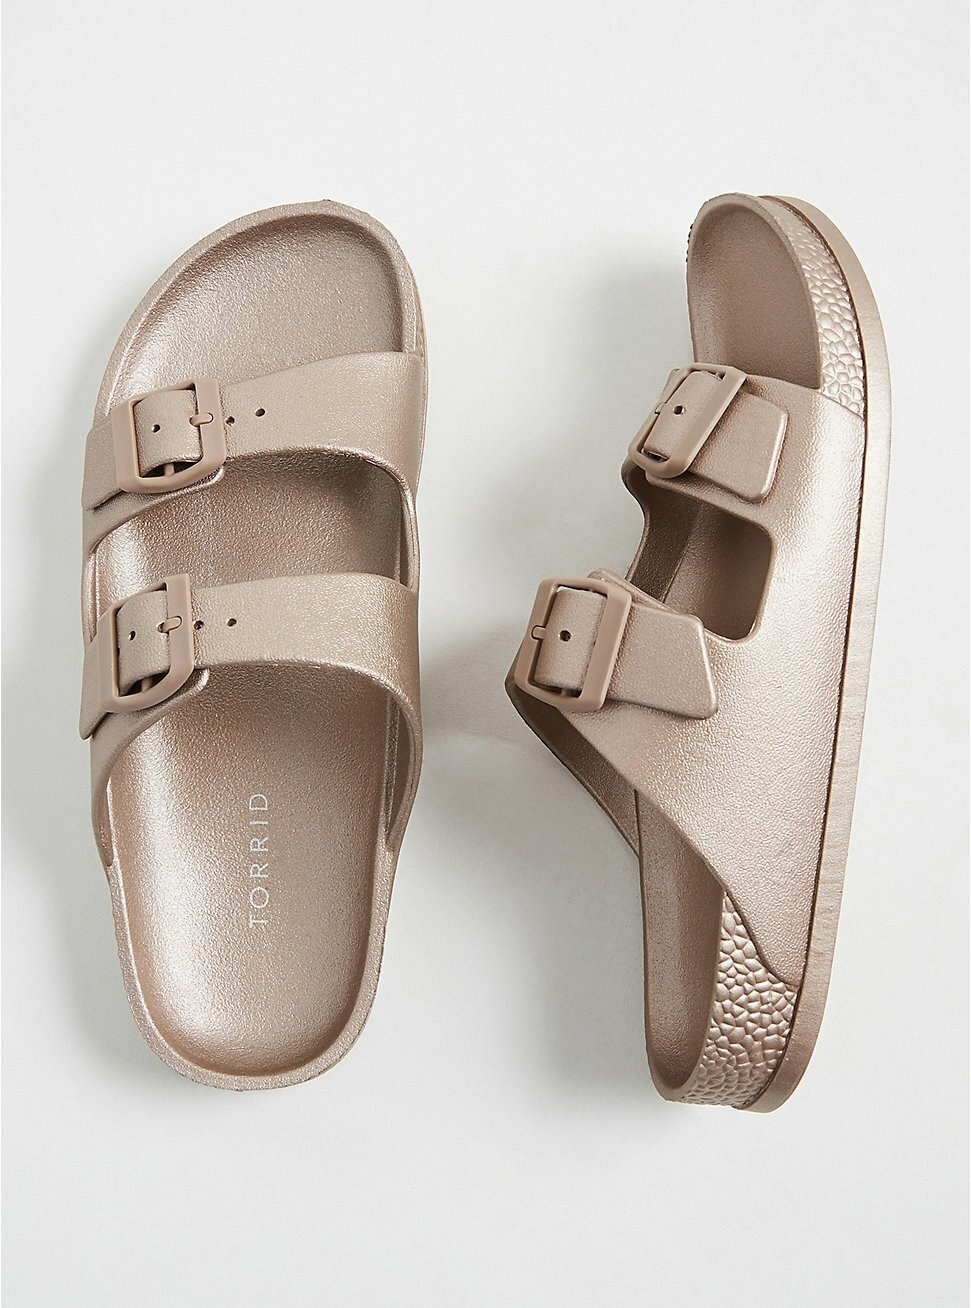 The sandals have a shimmering rose gold color, a padded rubber insole, and double top straps with buckles